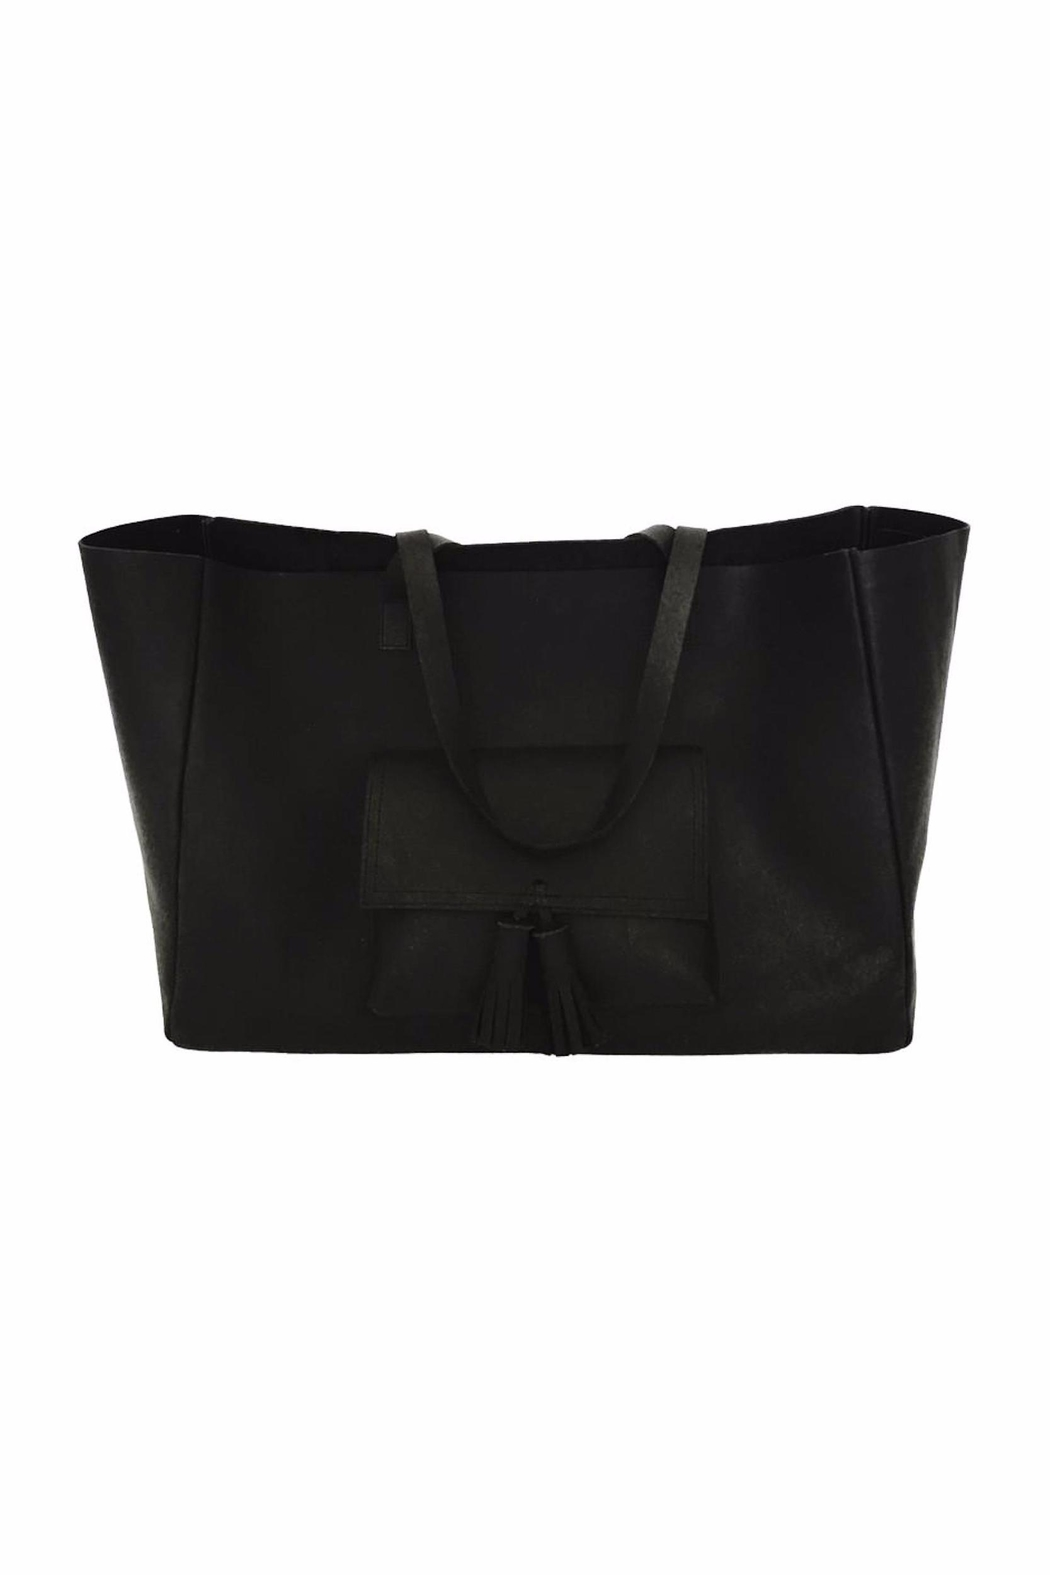 Boutonne Margaret Carry All Tote - Main Image